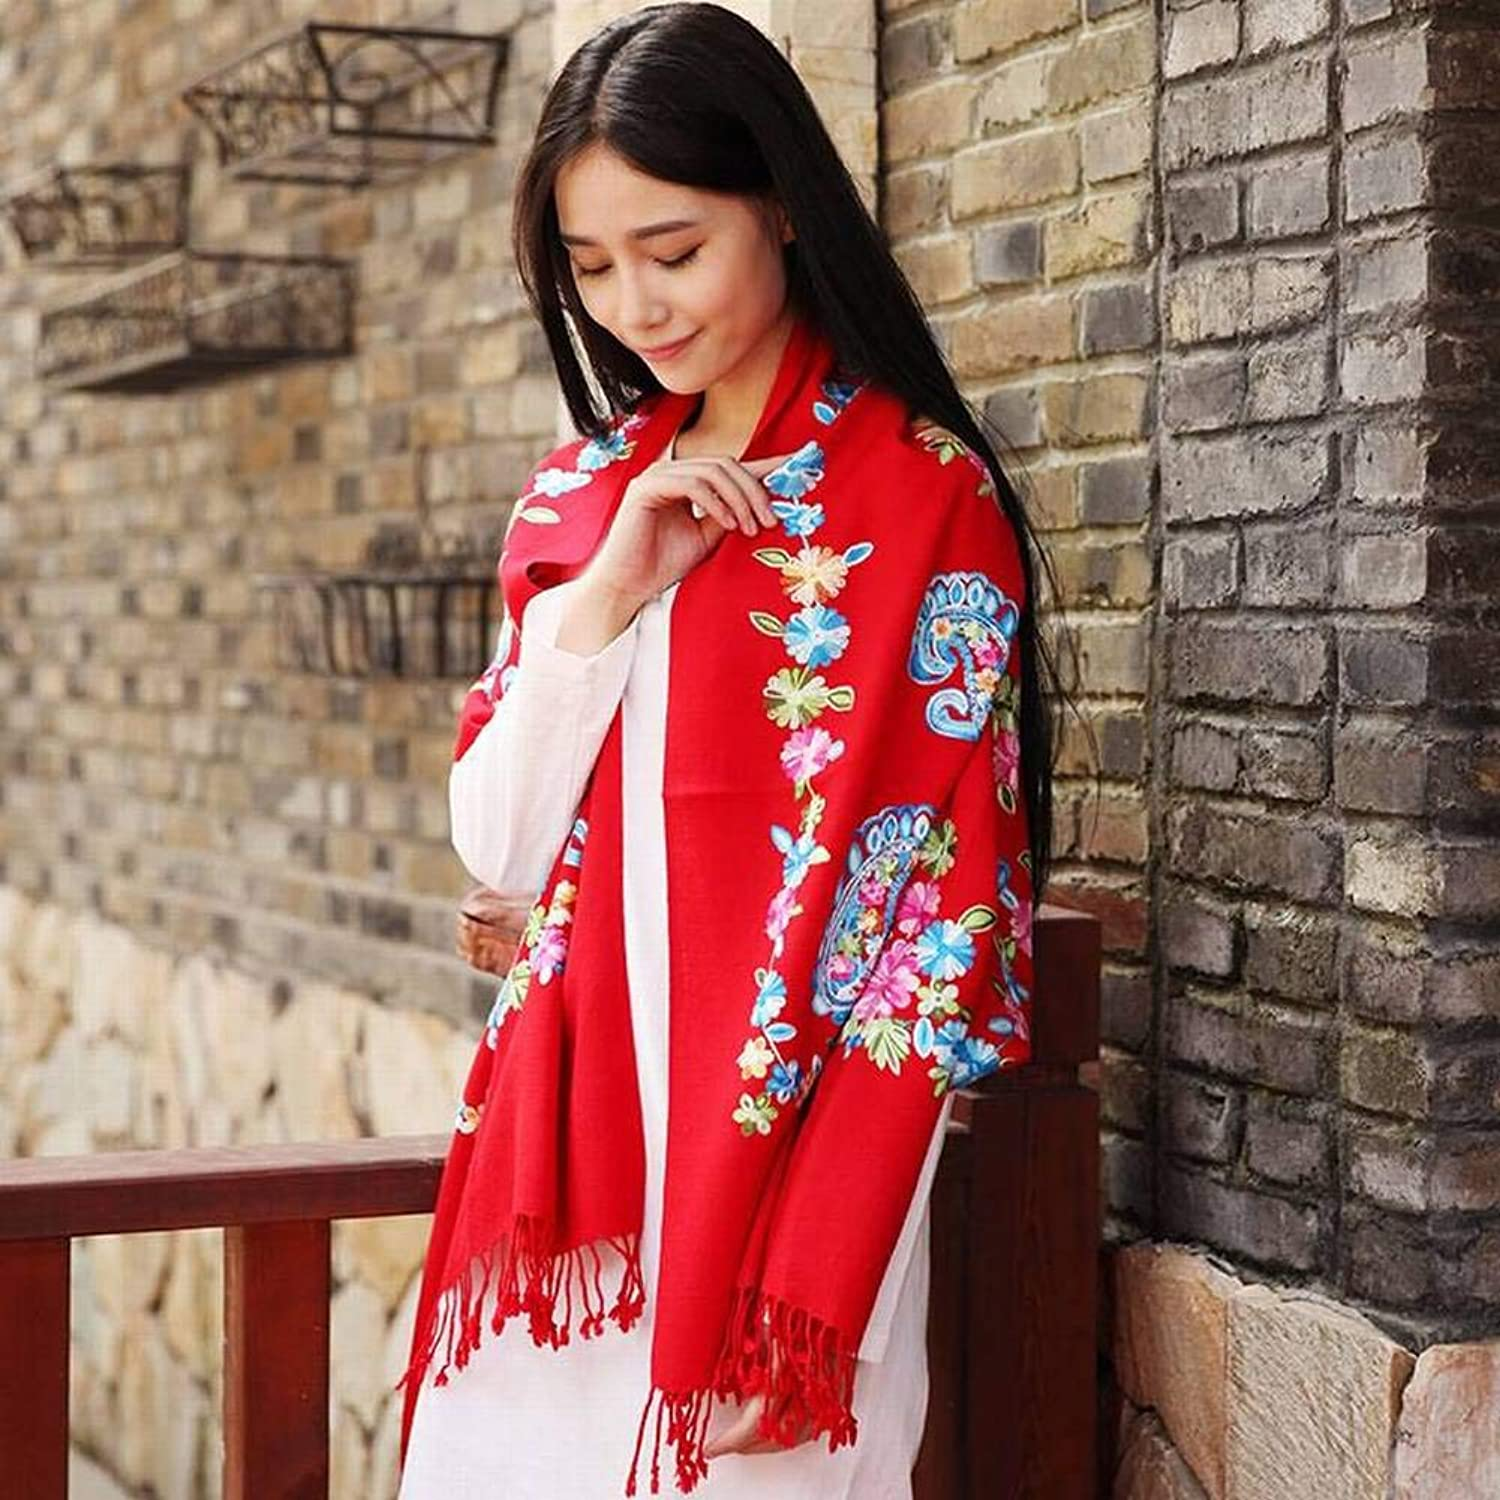 WJL Vintage Ethnic Embroidery Wool Female Warm Flower Long Scarf Autumn Winter Outdoor Multi-Functional Fgreyion Trend Wild Warm Shawl Scarf Gift